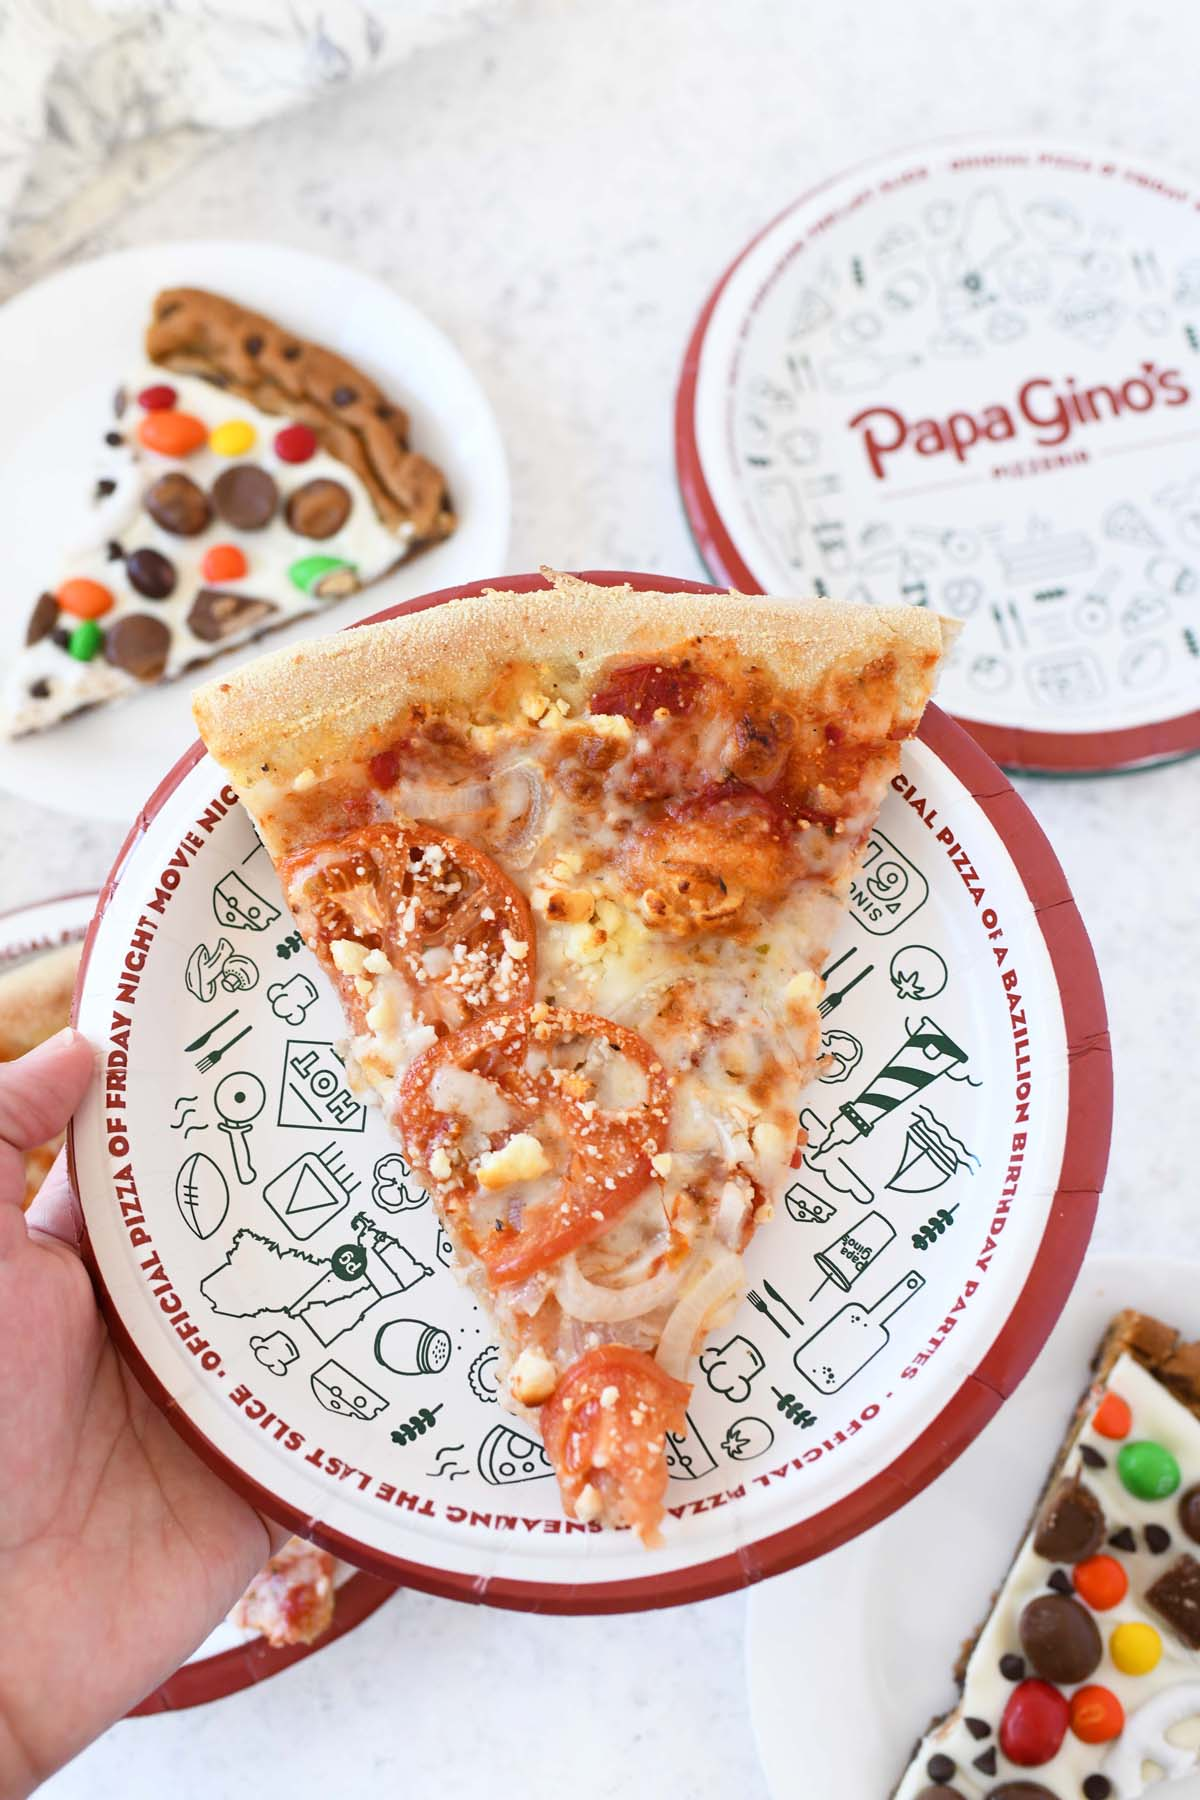 Feta and Tomato Pizza on a Papa Gino's pizza plate in a hand.